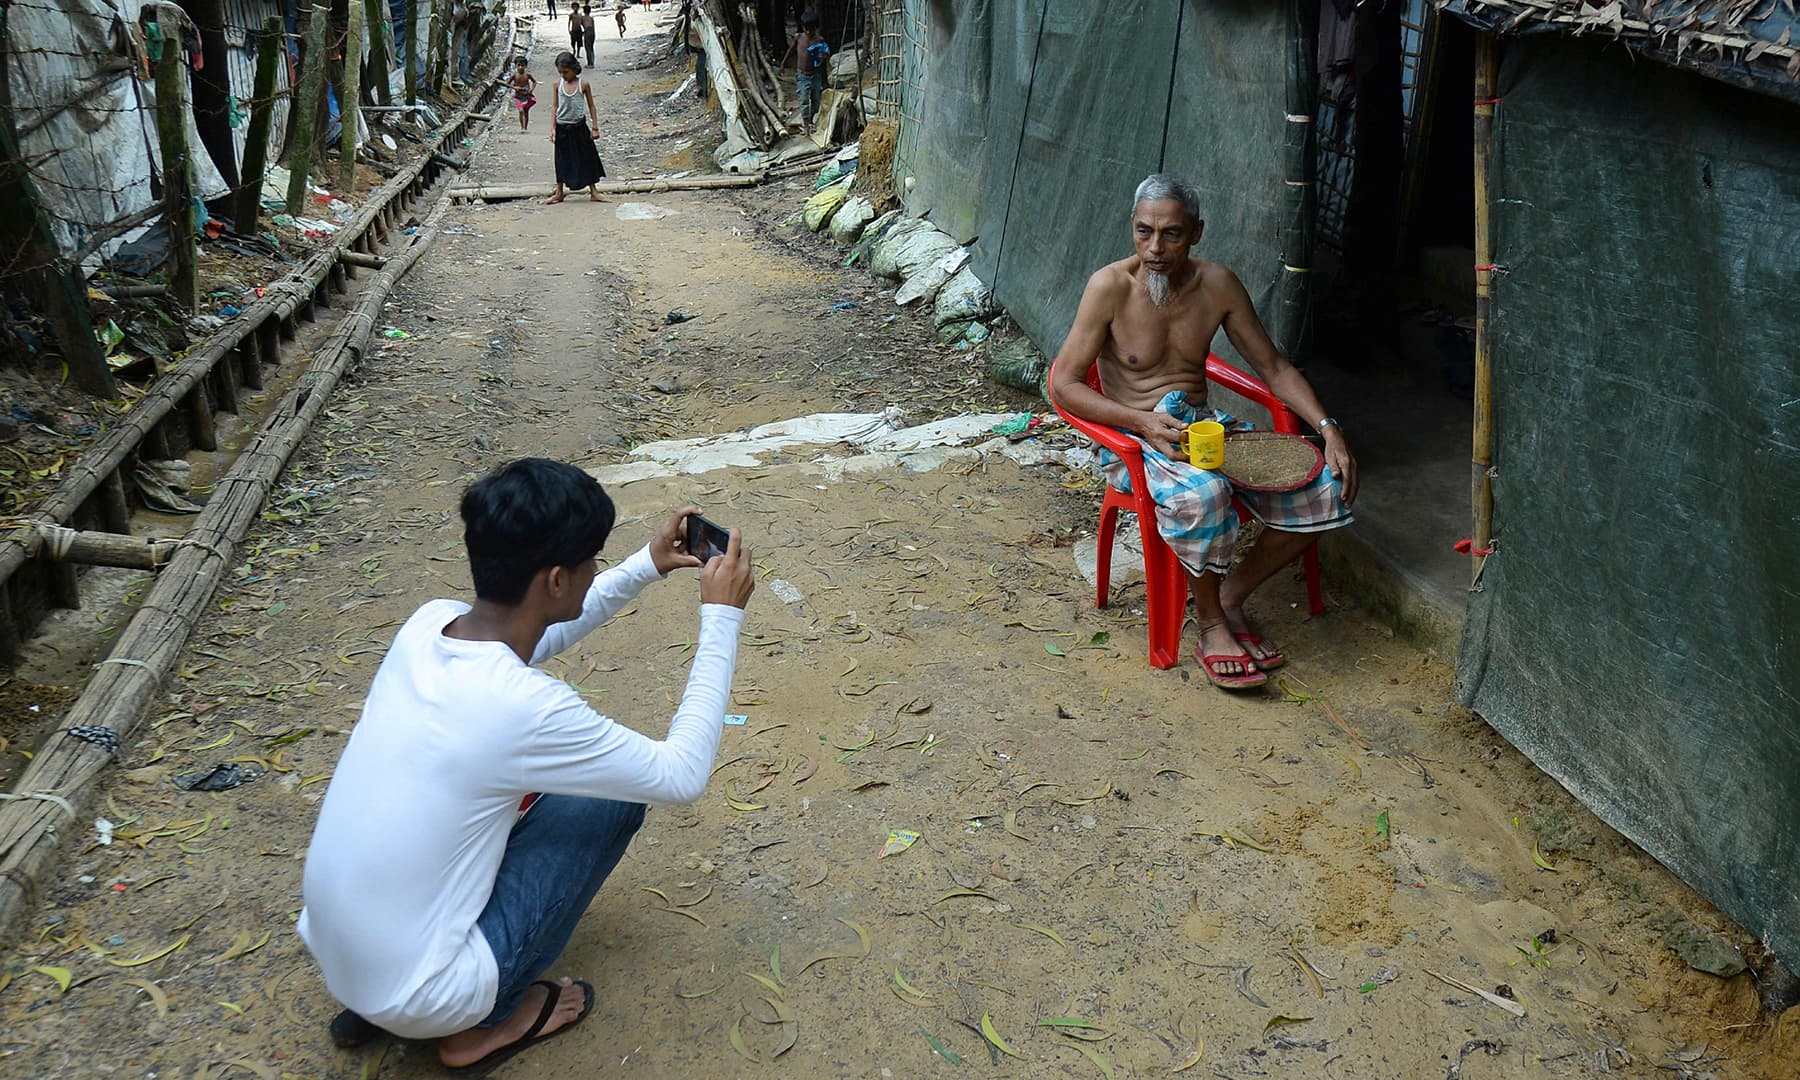 Rohingya youth Mohammad Rafiq uses his mobile phone to take photos of a man by his shack at the Kutupalong refugee camp. — AFP